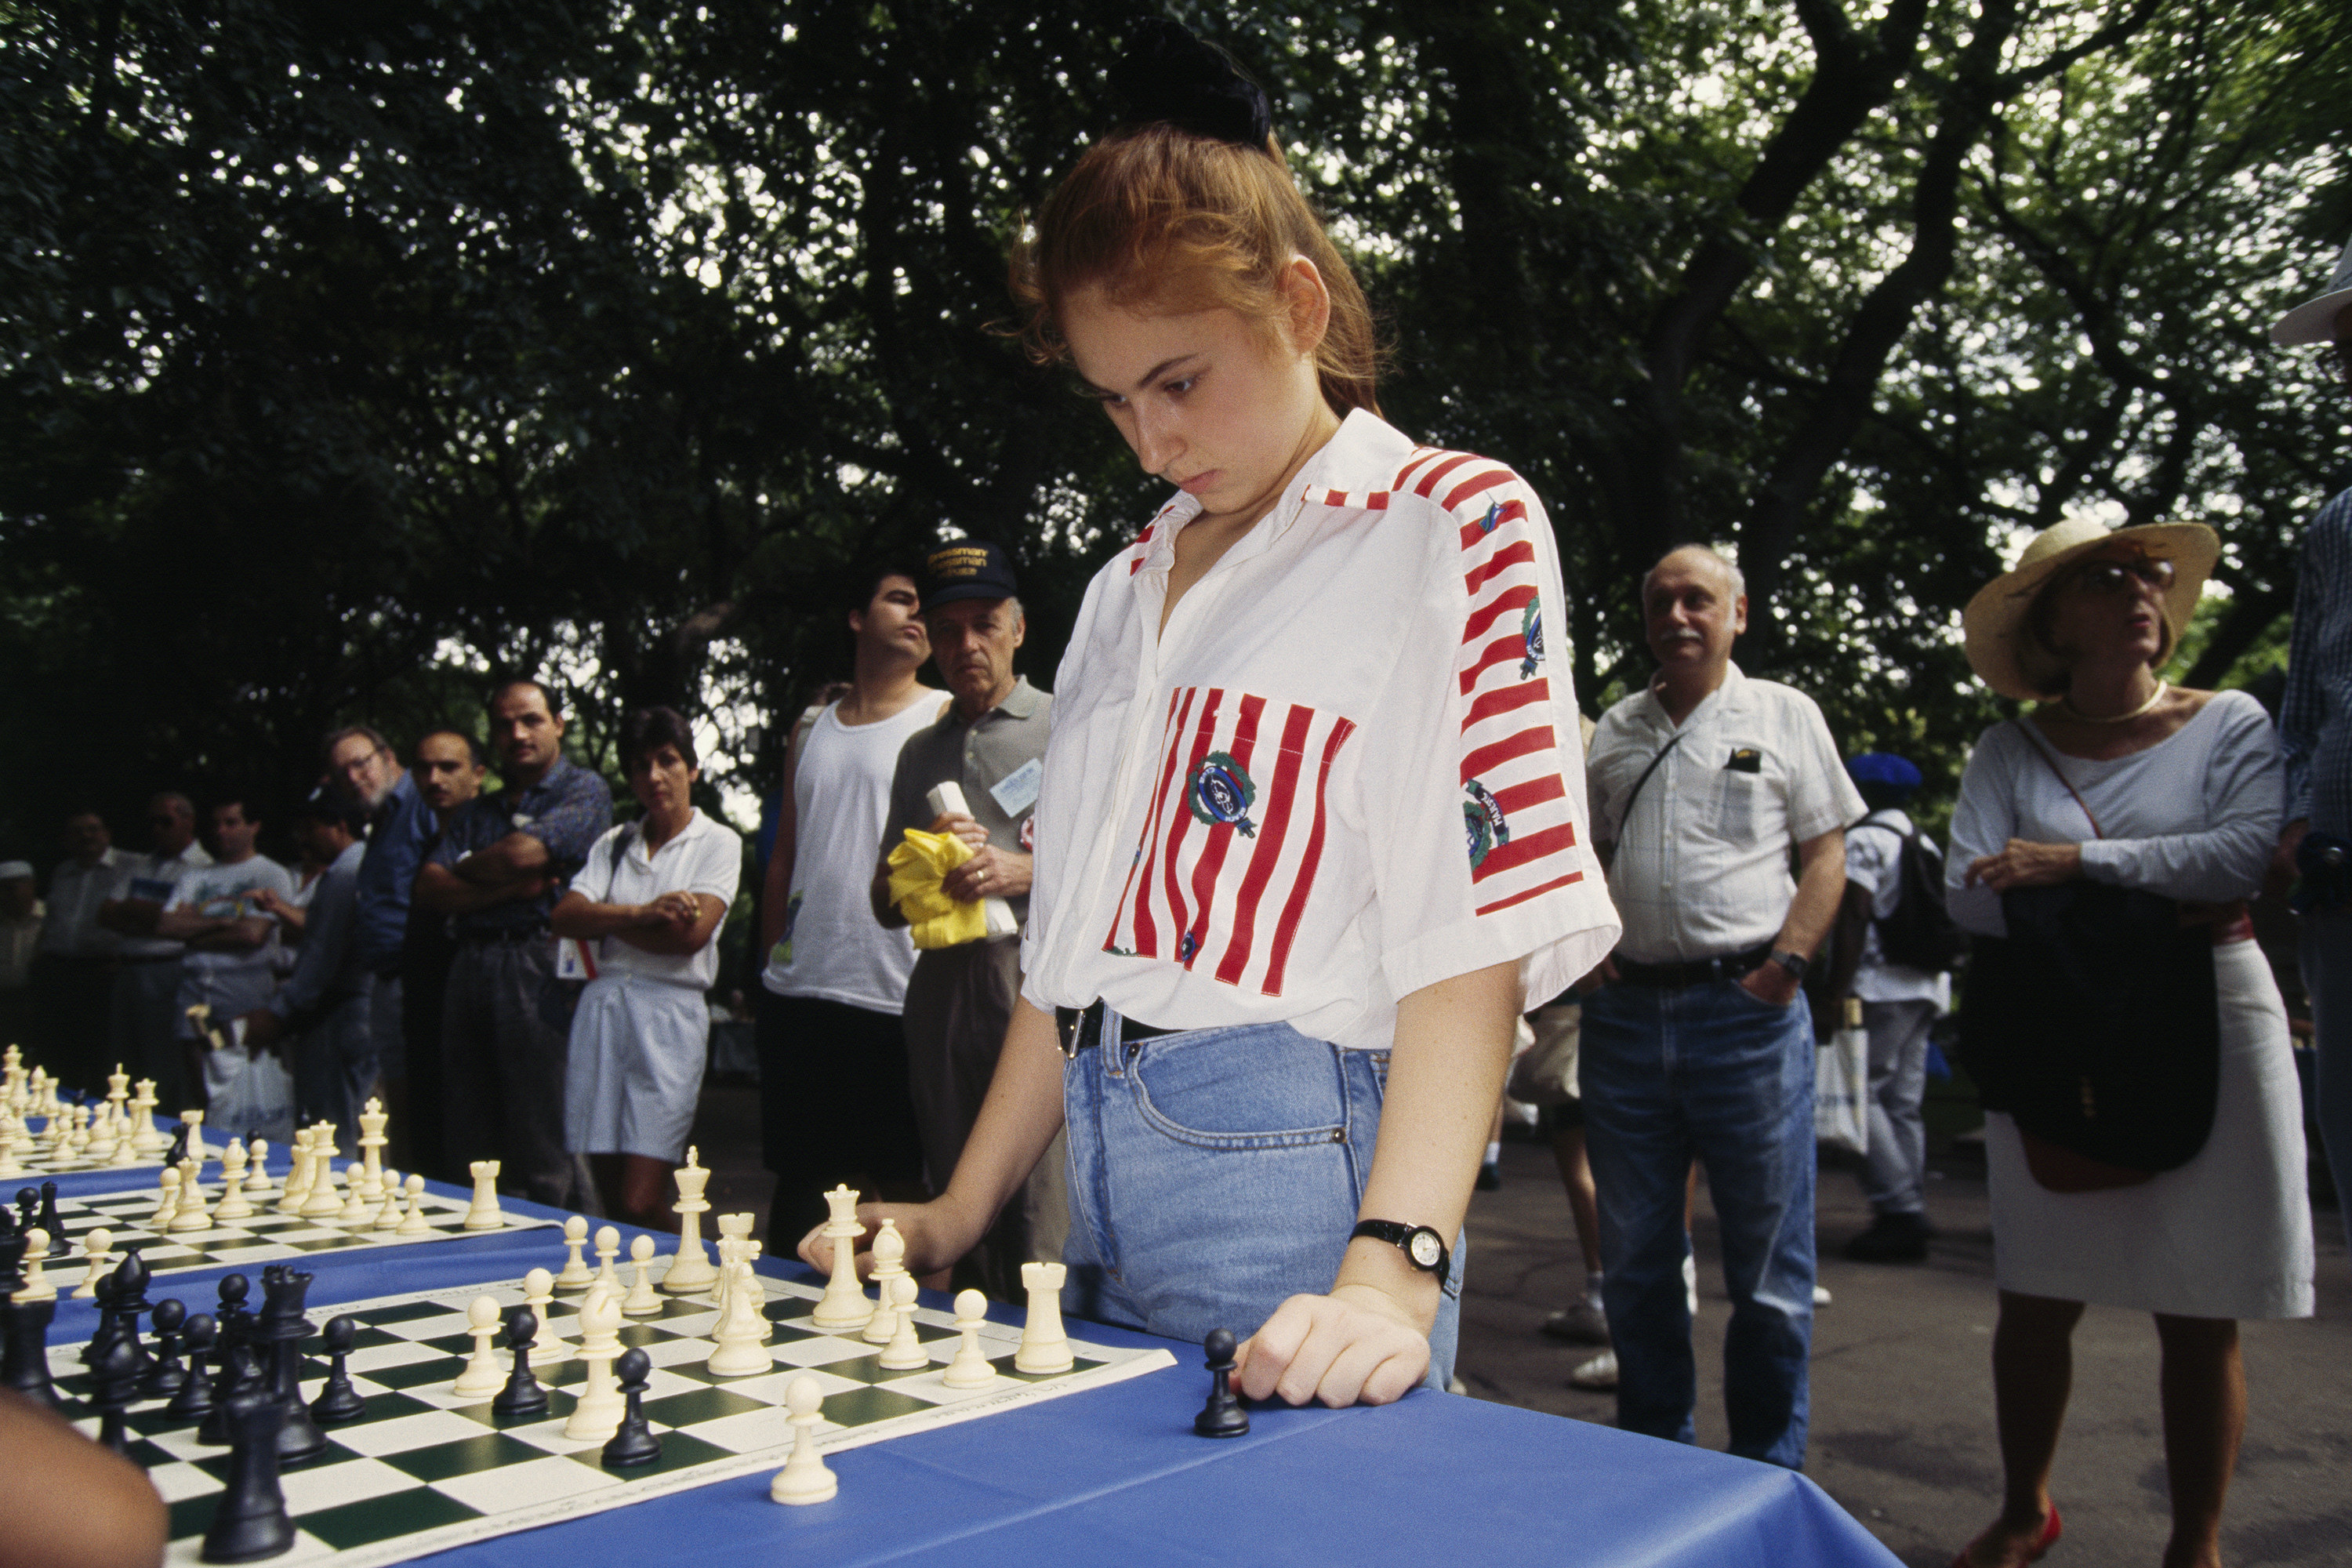 A redheaded girl stares intently at a chessboard while a crowd watches behind her